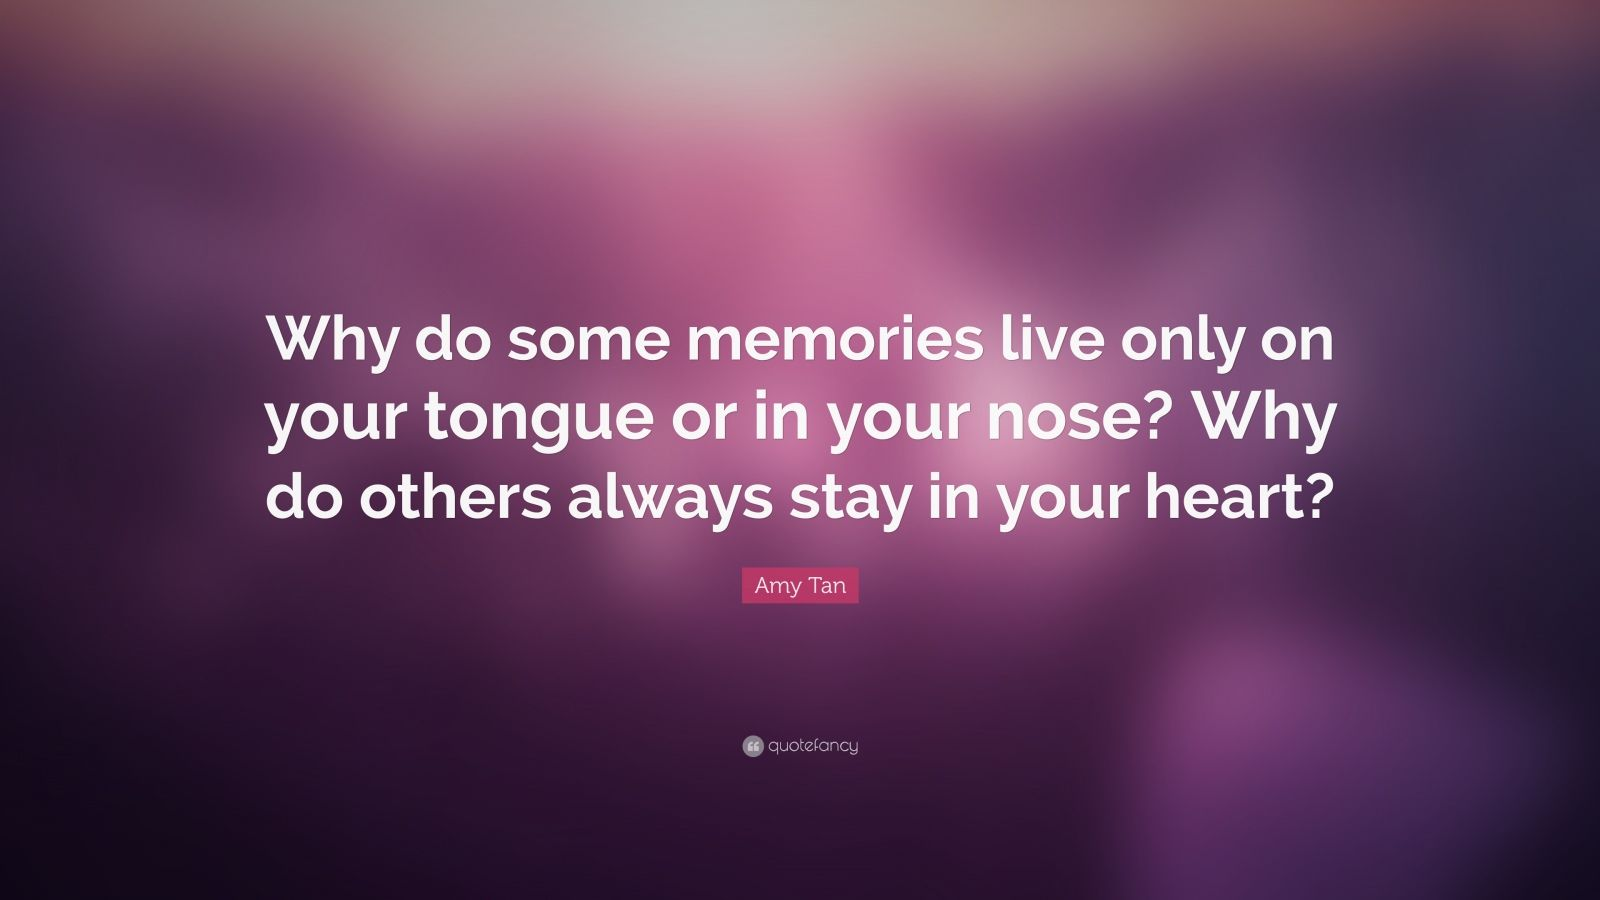 amy tan quotes quotefancy amy tan quote why do some memories live only on your tongue or in